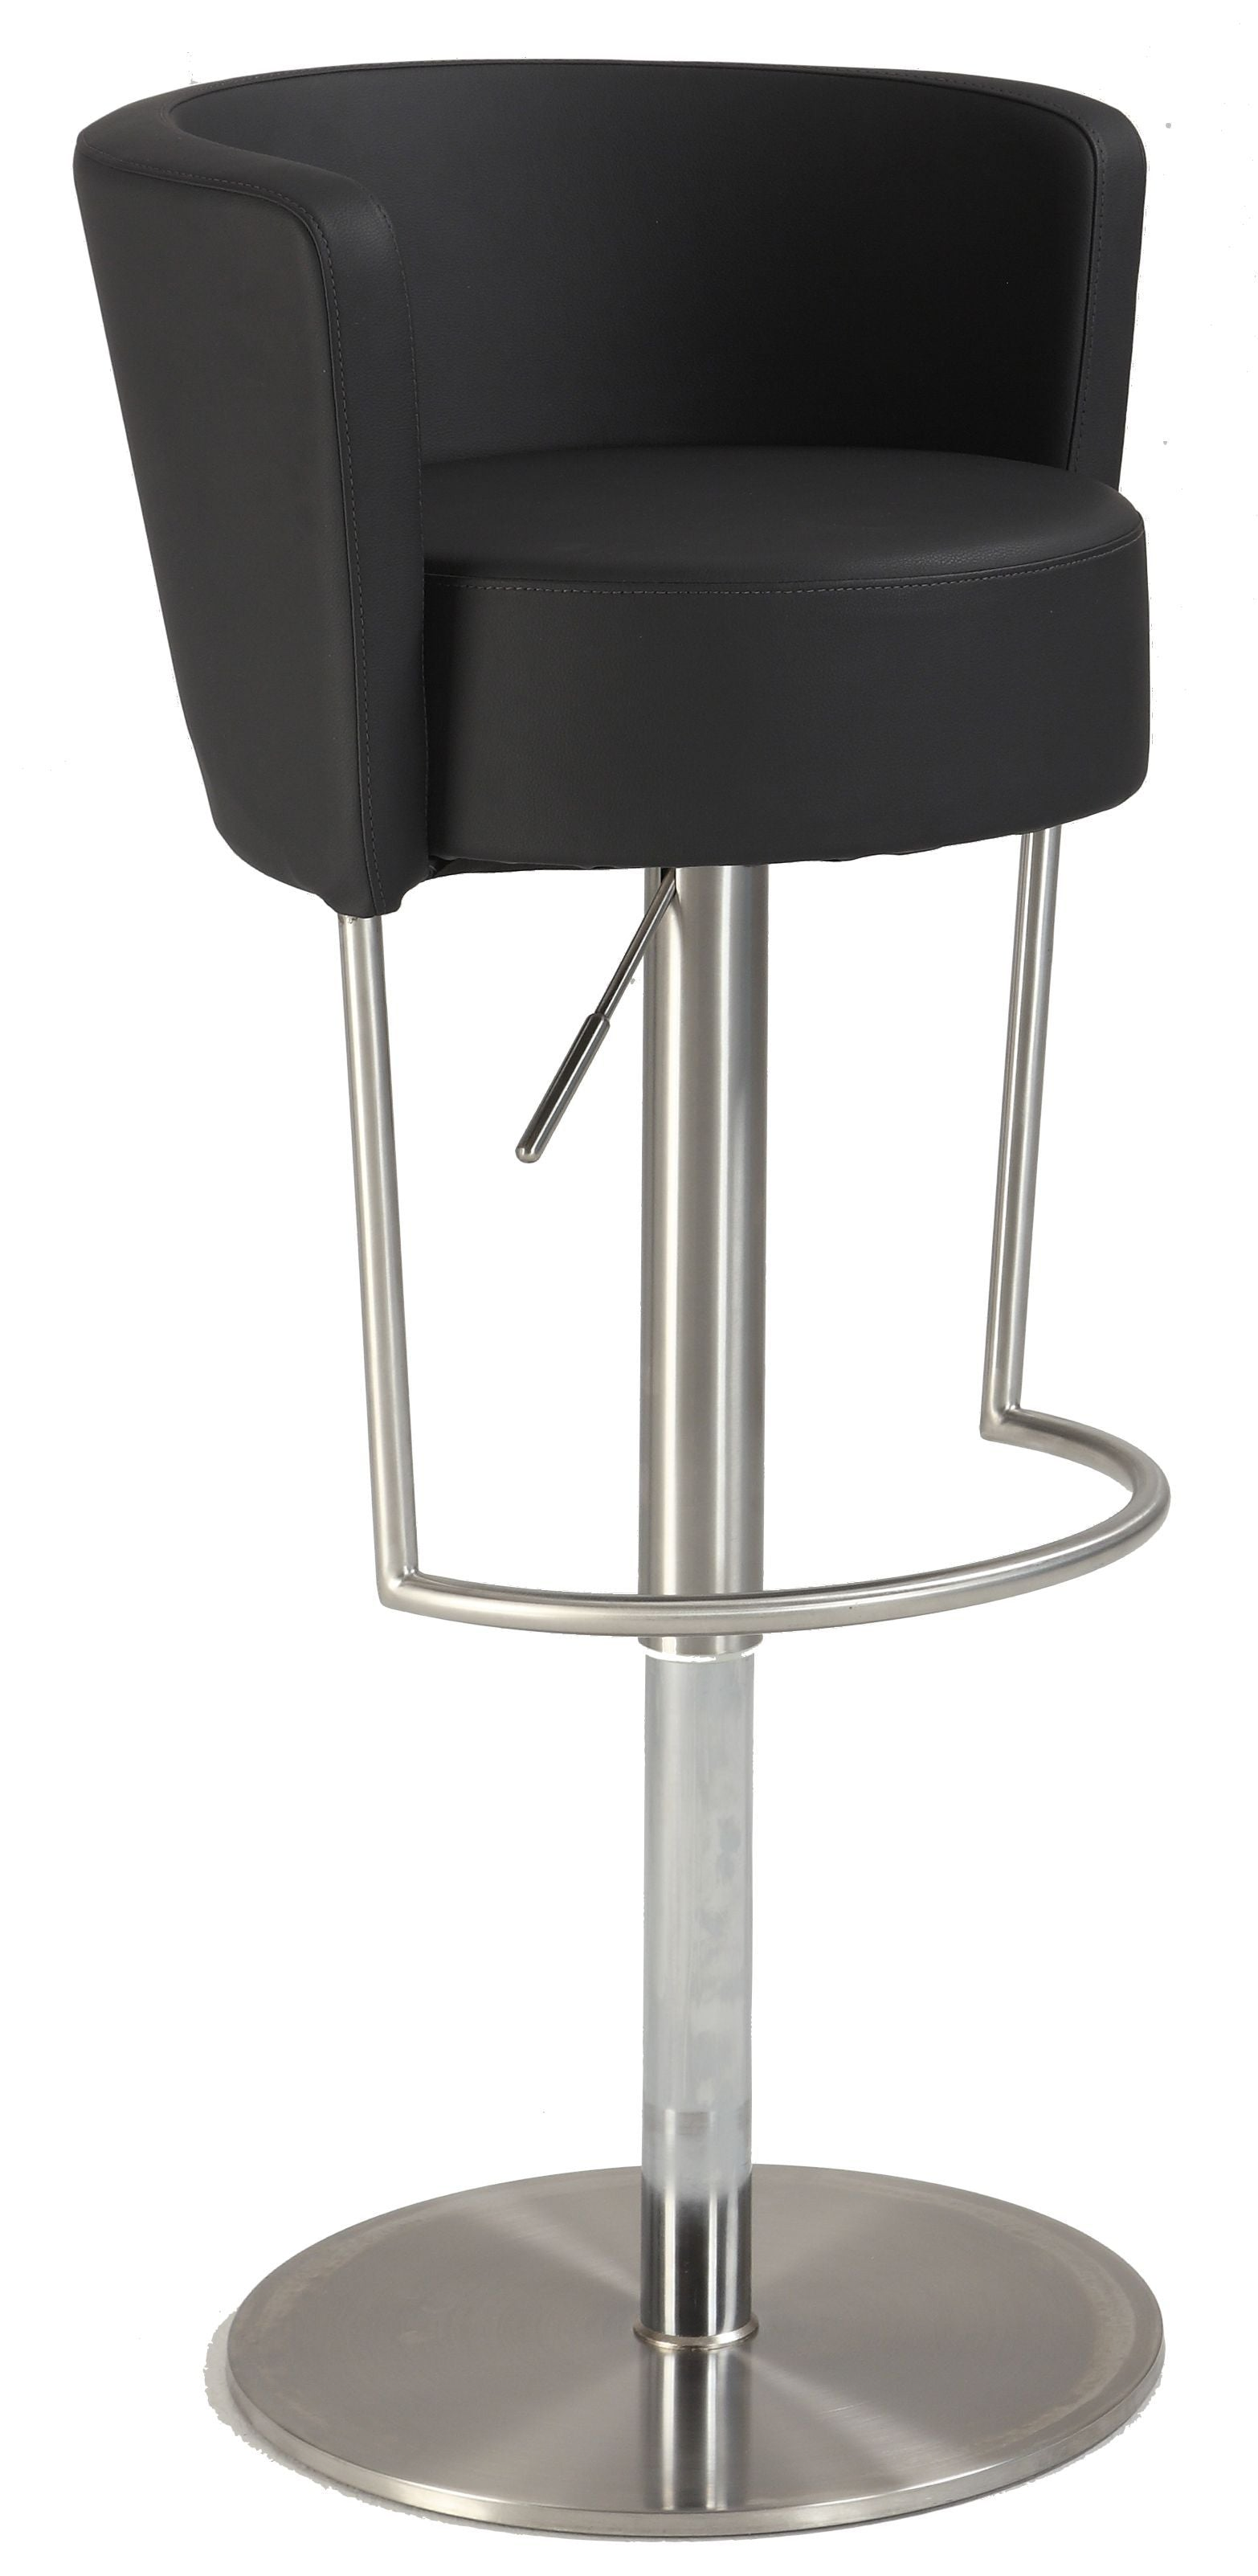 Chintaly 1640-AS-BLK Modern Pneumatic Gas Lift Swivel Stool from Chintaly